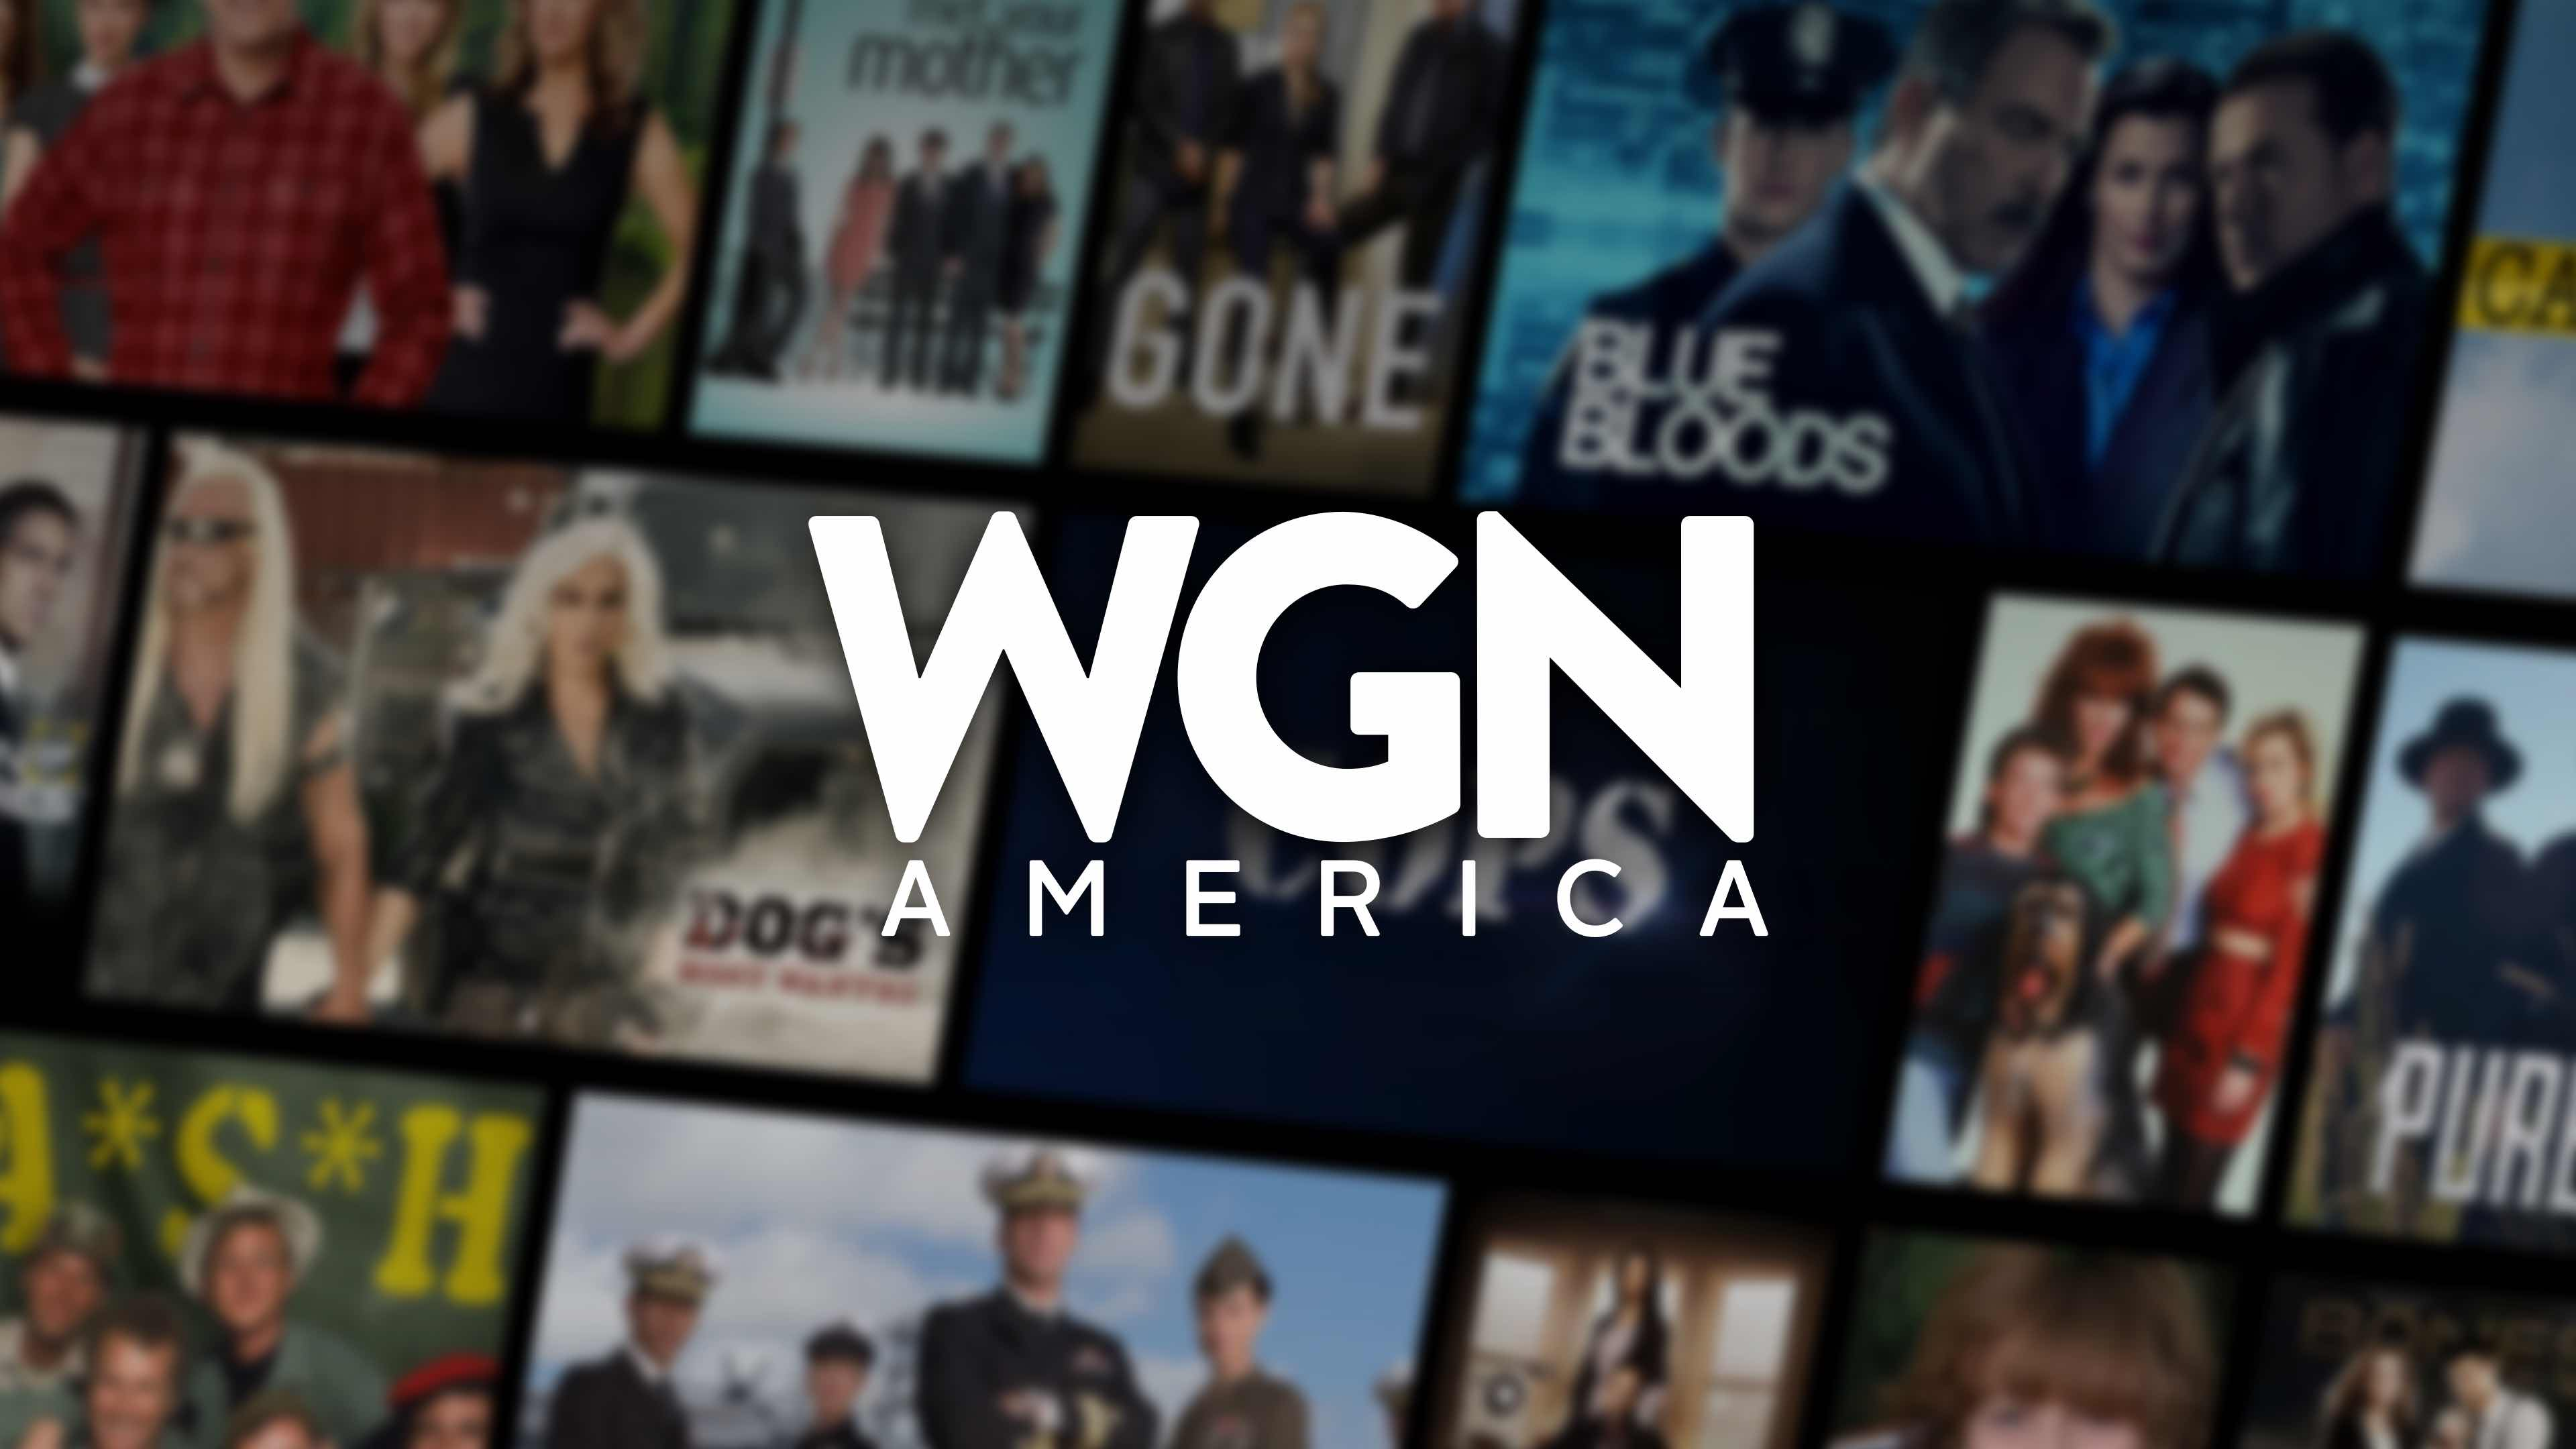 Visual tiles displaying all WGN America top shows